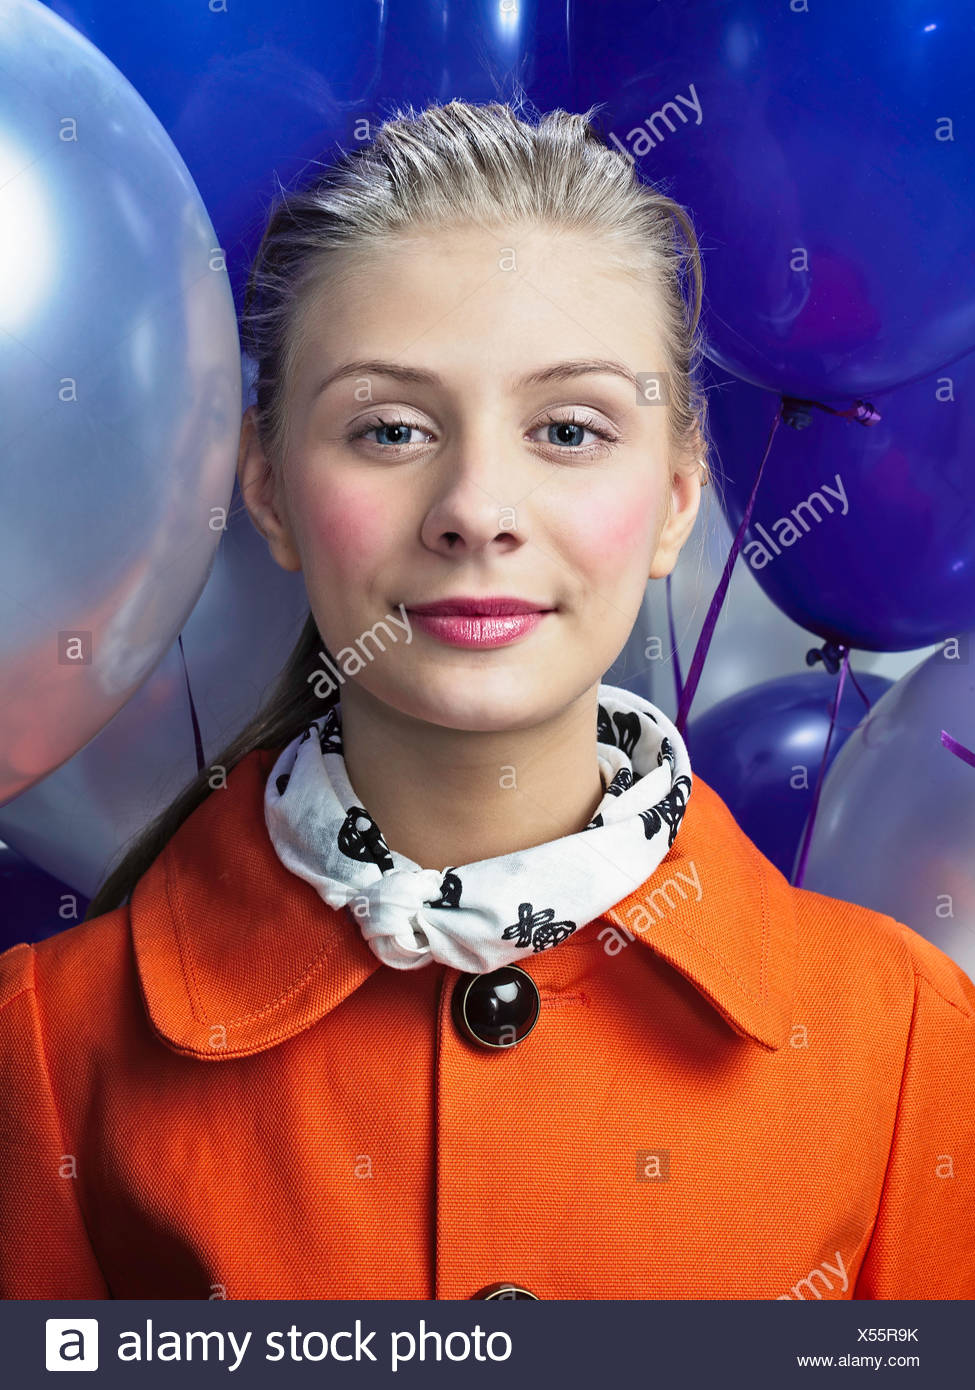 Smiling woman with balloons - Stock Image